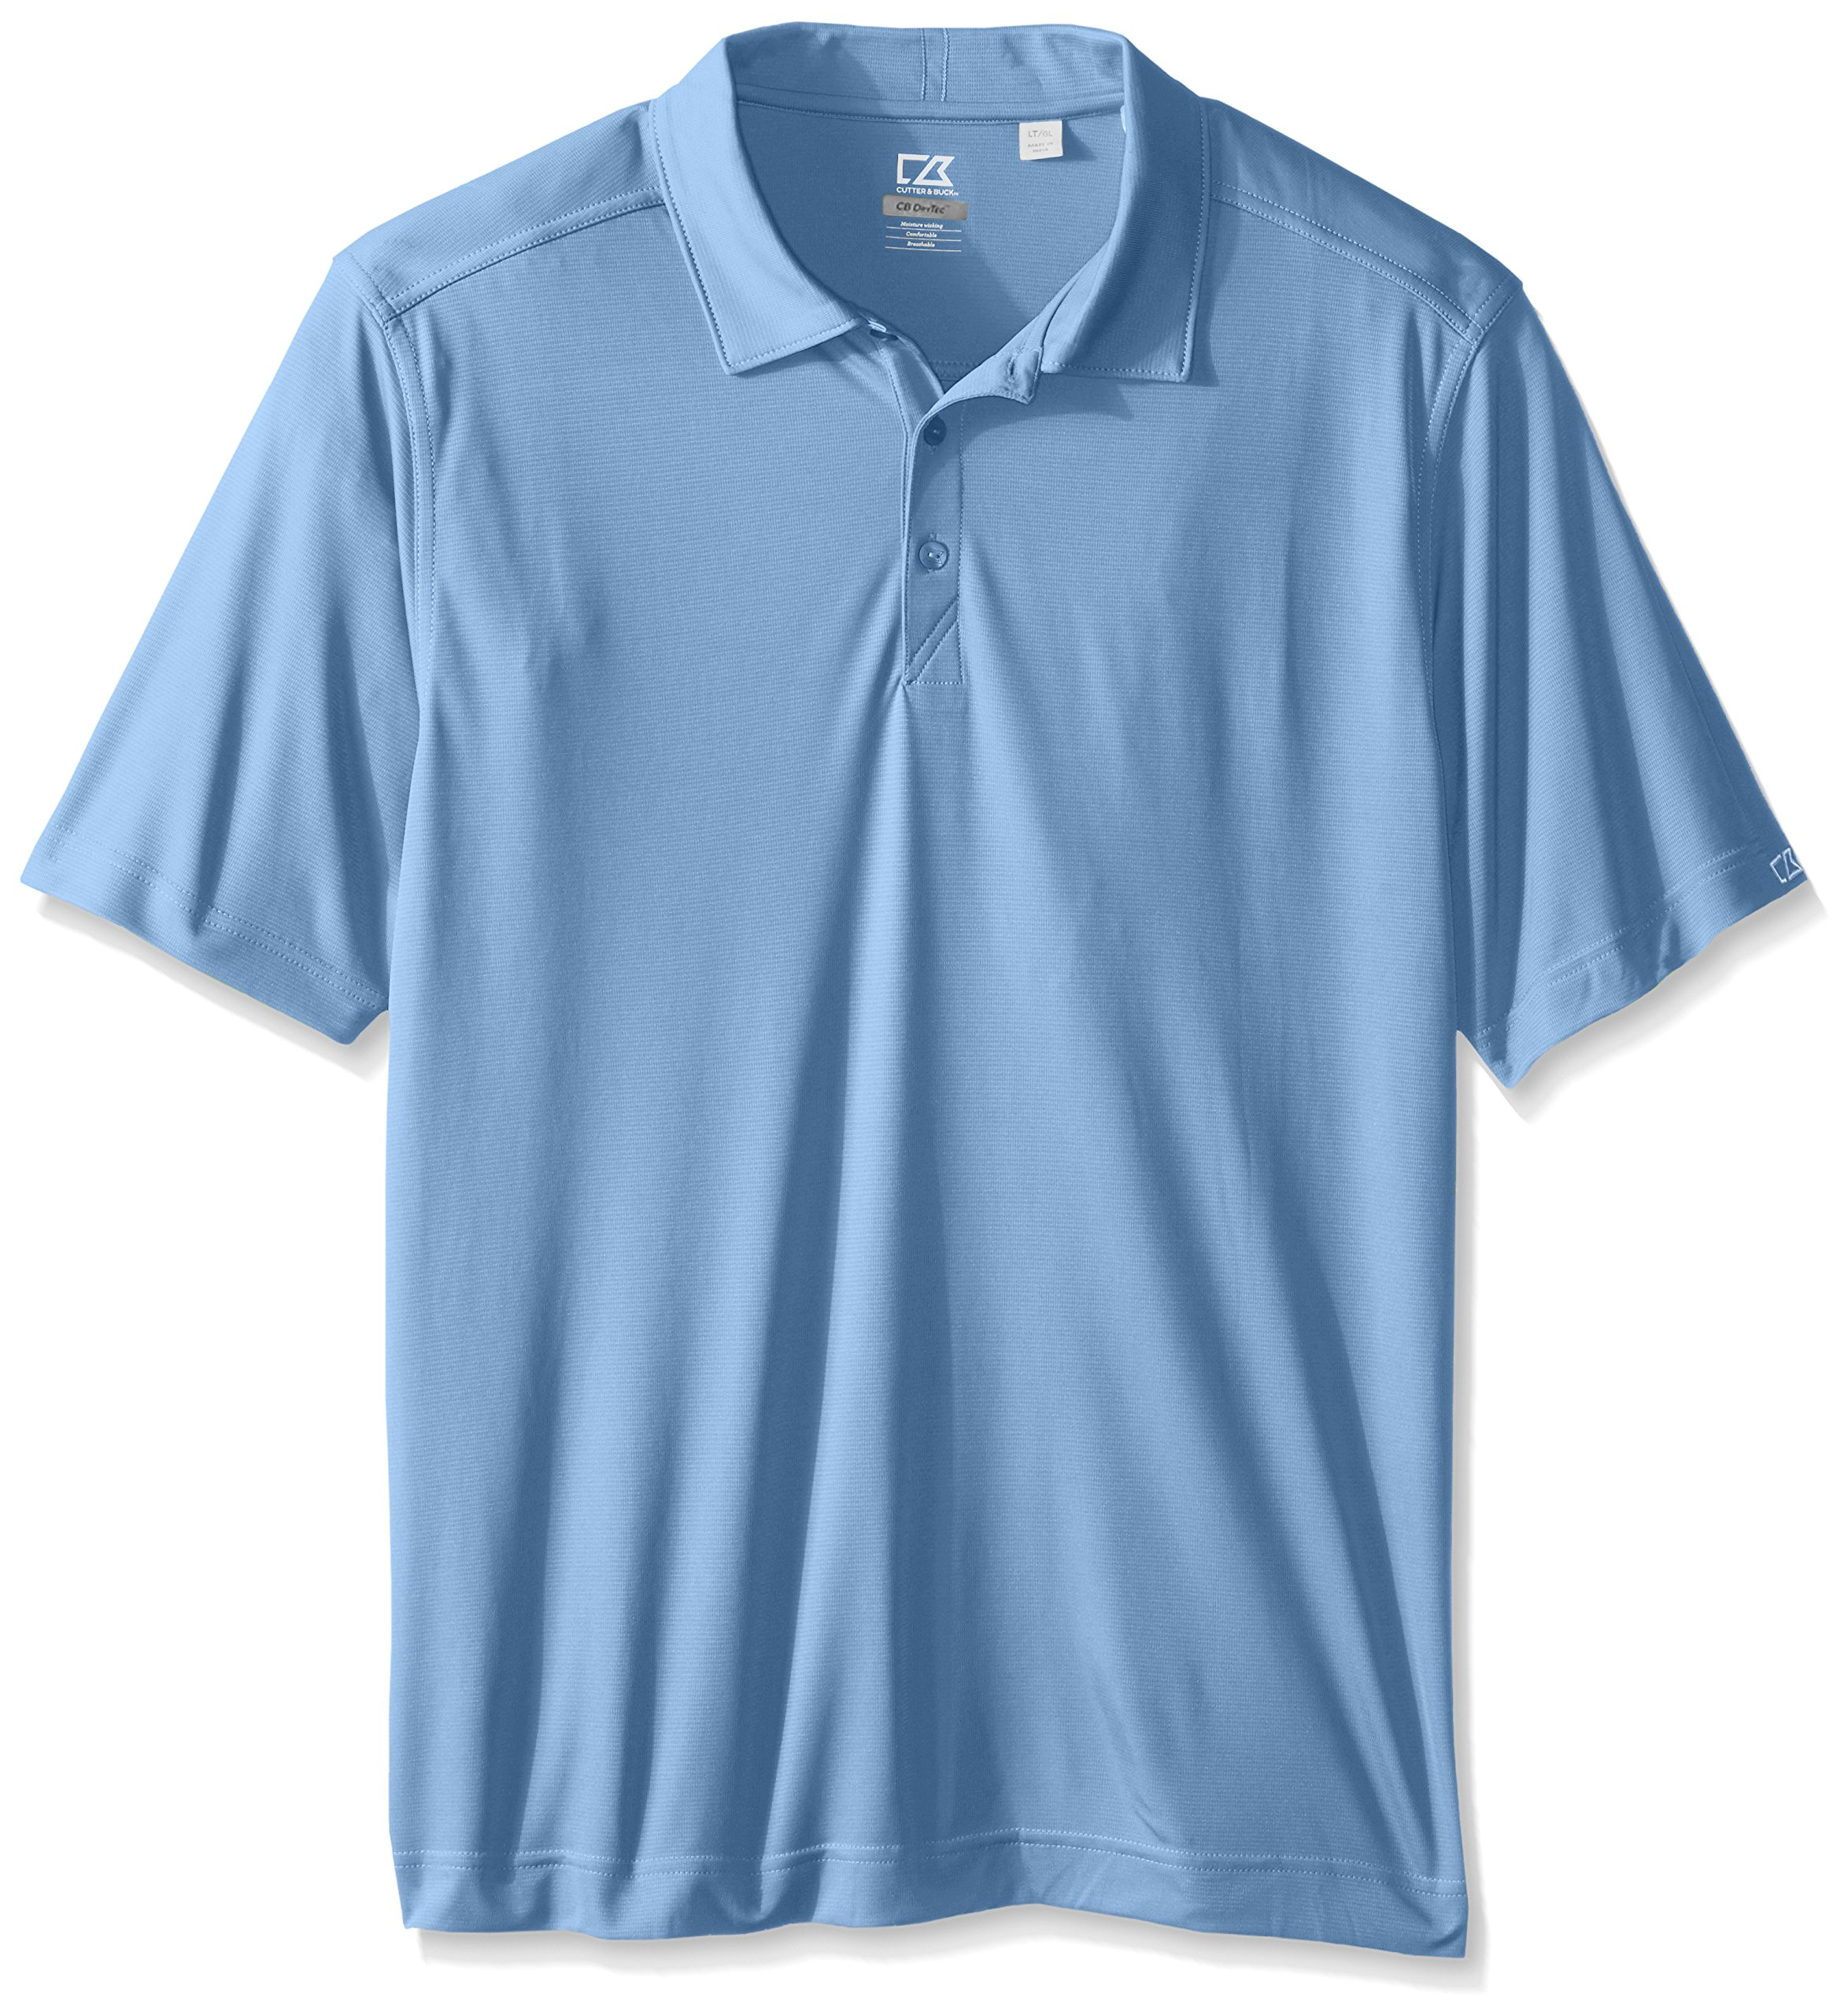 Cutter & Buck Men's Tall Cb Drytec Northgate Polo Shirt, Atlas, 5X/Big